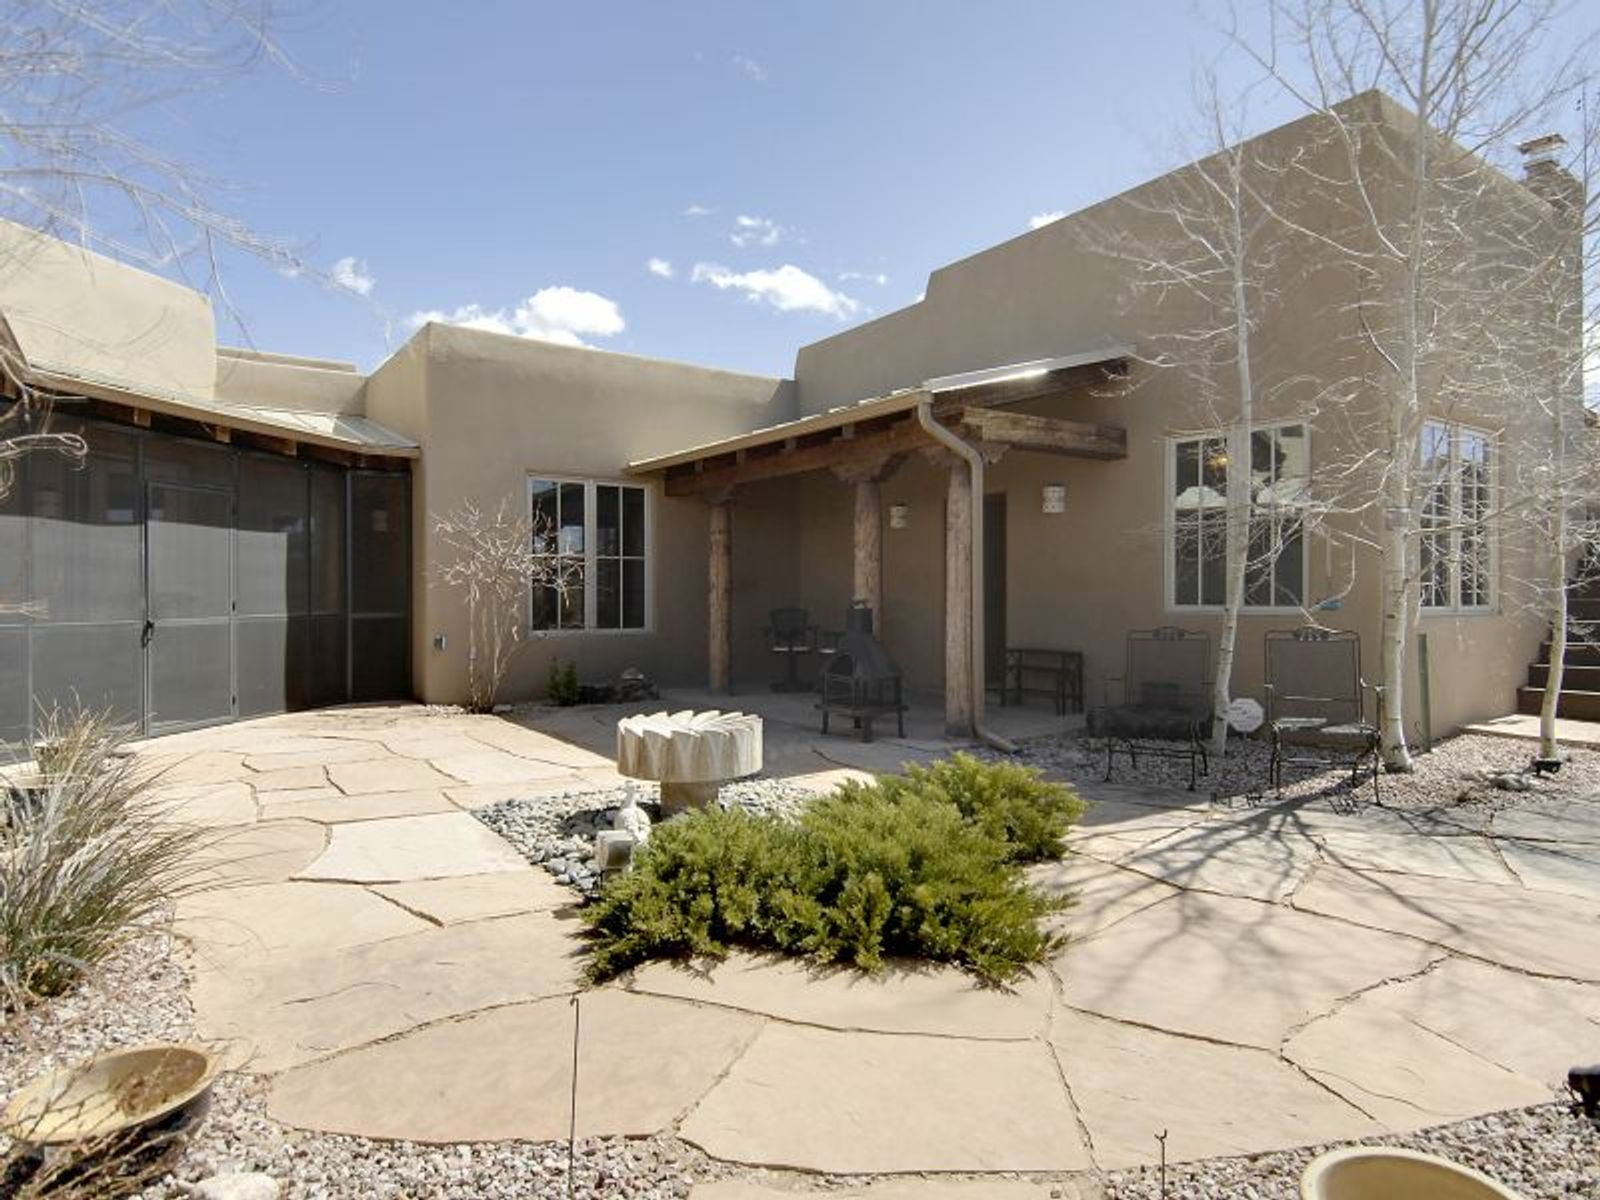 32  Camino De Vecinos, Santa Fe NM Single Family Home - Santa Fe Real Estate